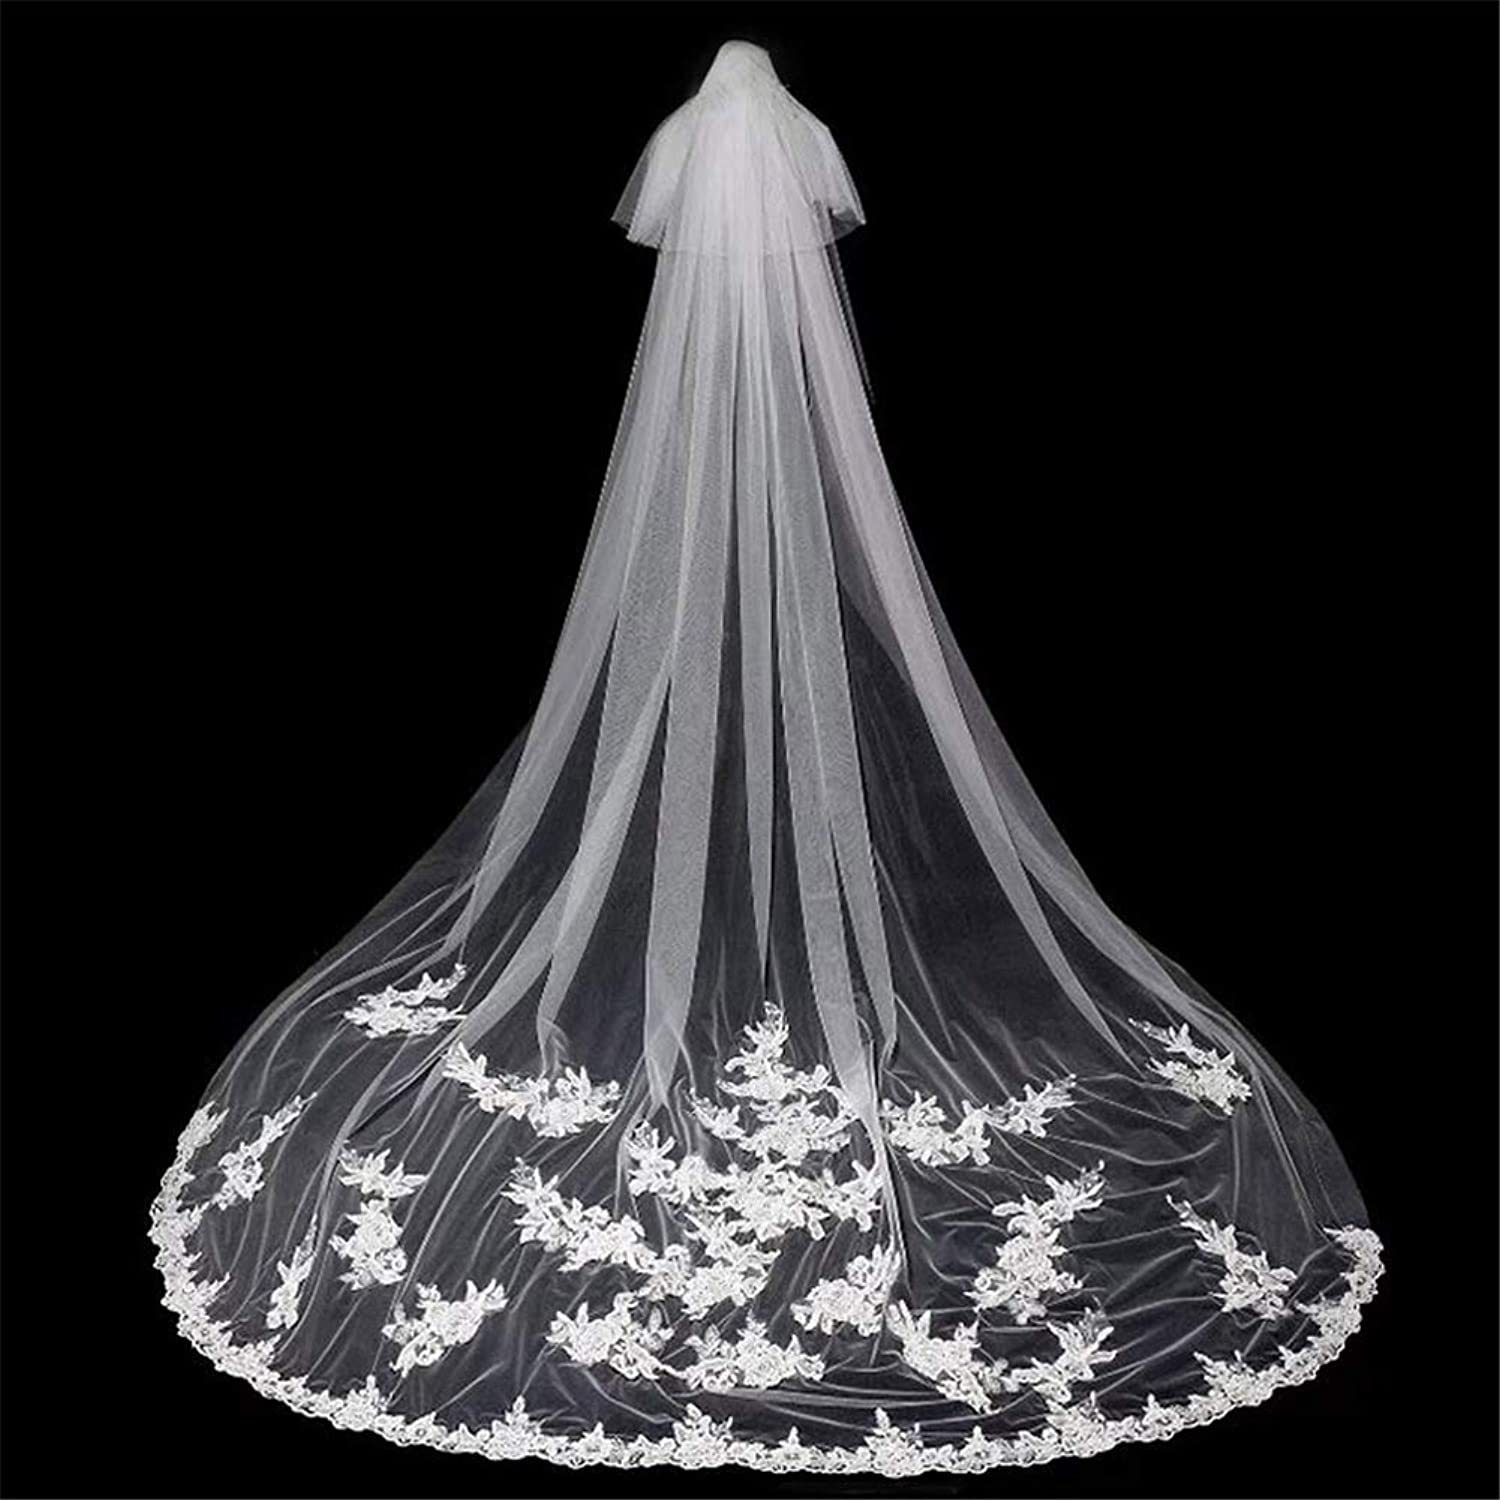 2 Tier Bridal Veils Lace Applique Edge Cathedral Long Wedding Ivory Veil with Comb Soft Tulle Hair Accessories for Bride